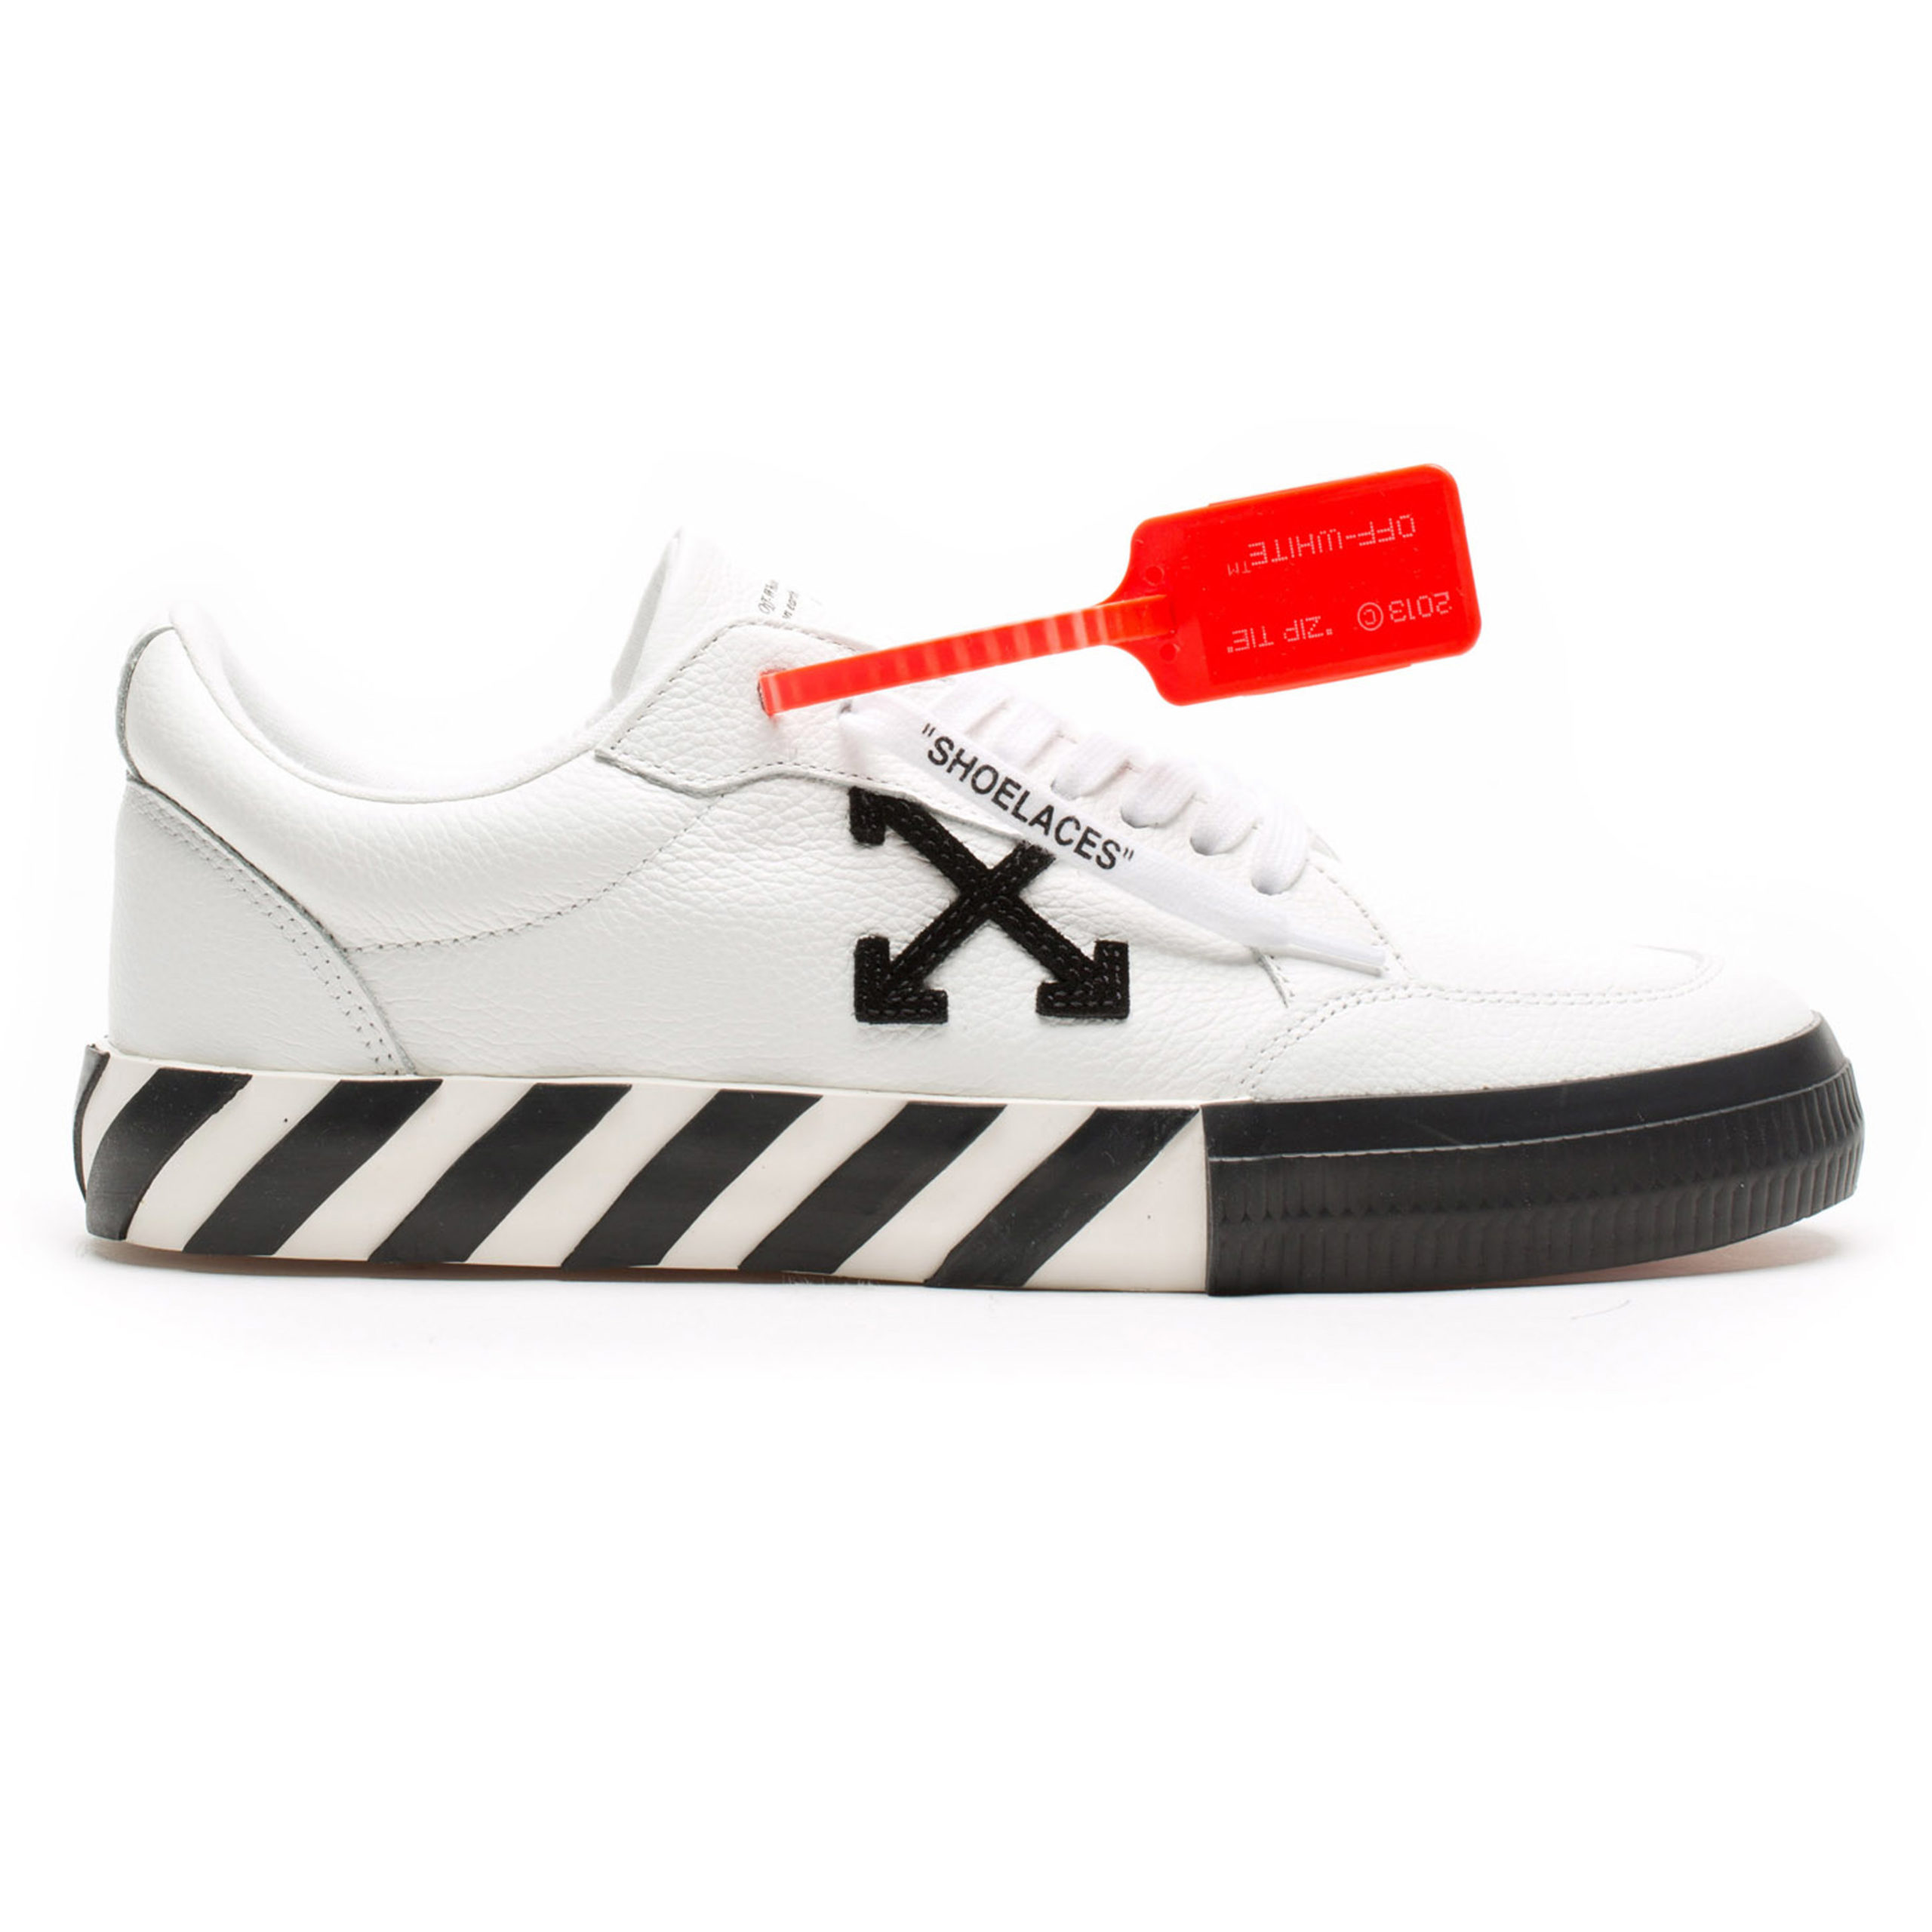 Off-White Vulcanized Sneakers